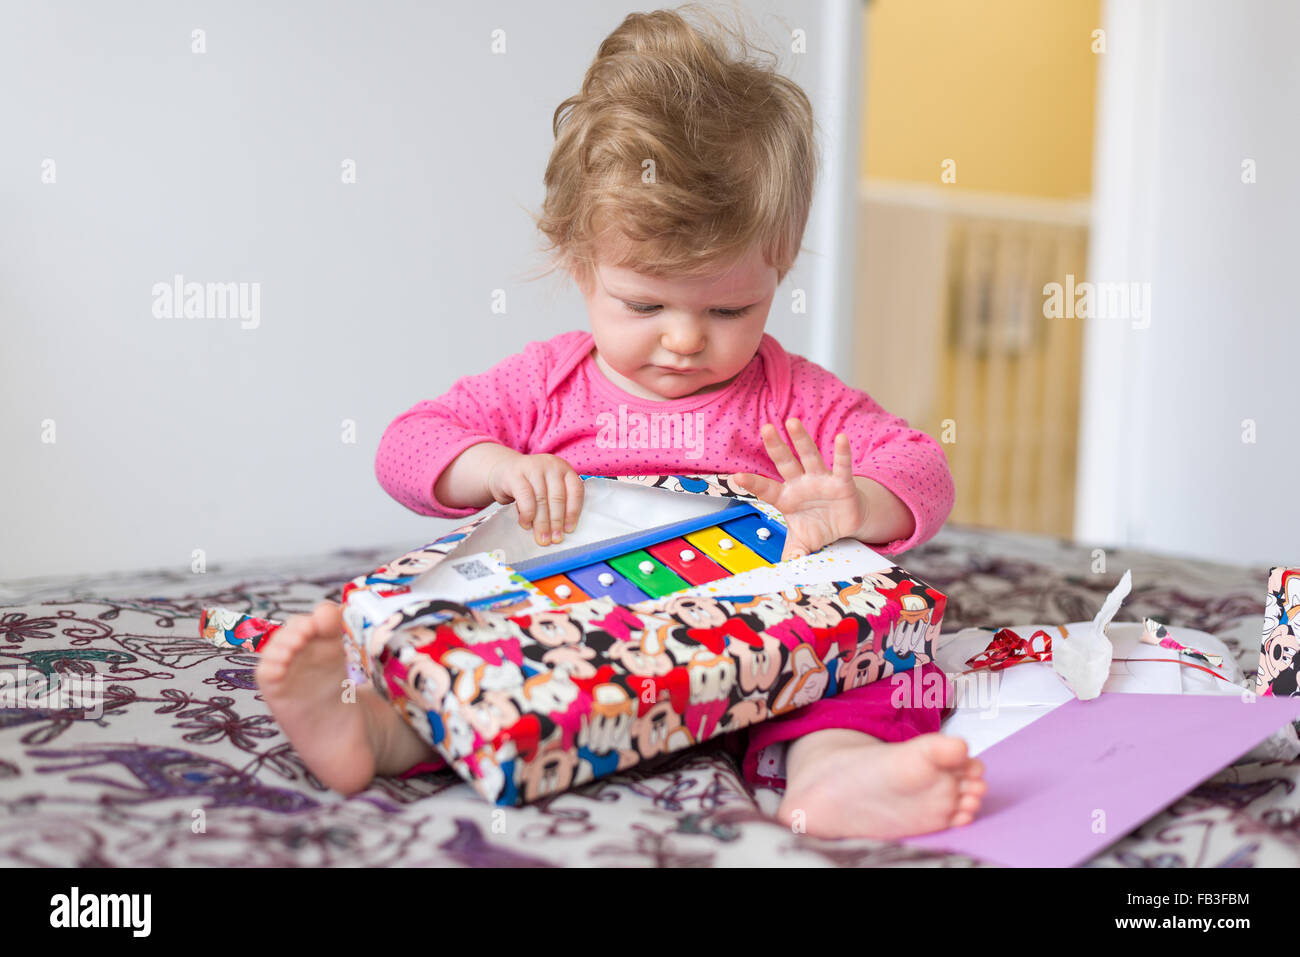 One year old baby unwrapping birthday present - Stock Image